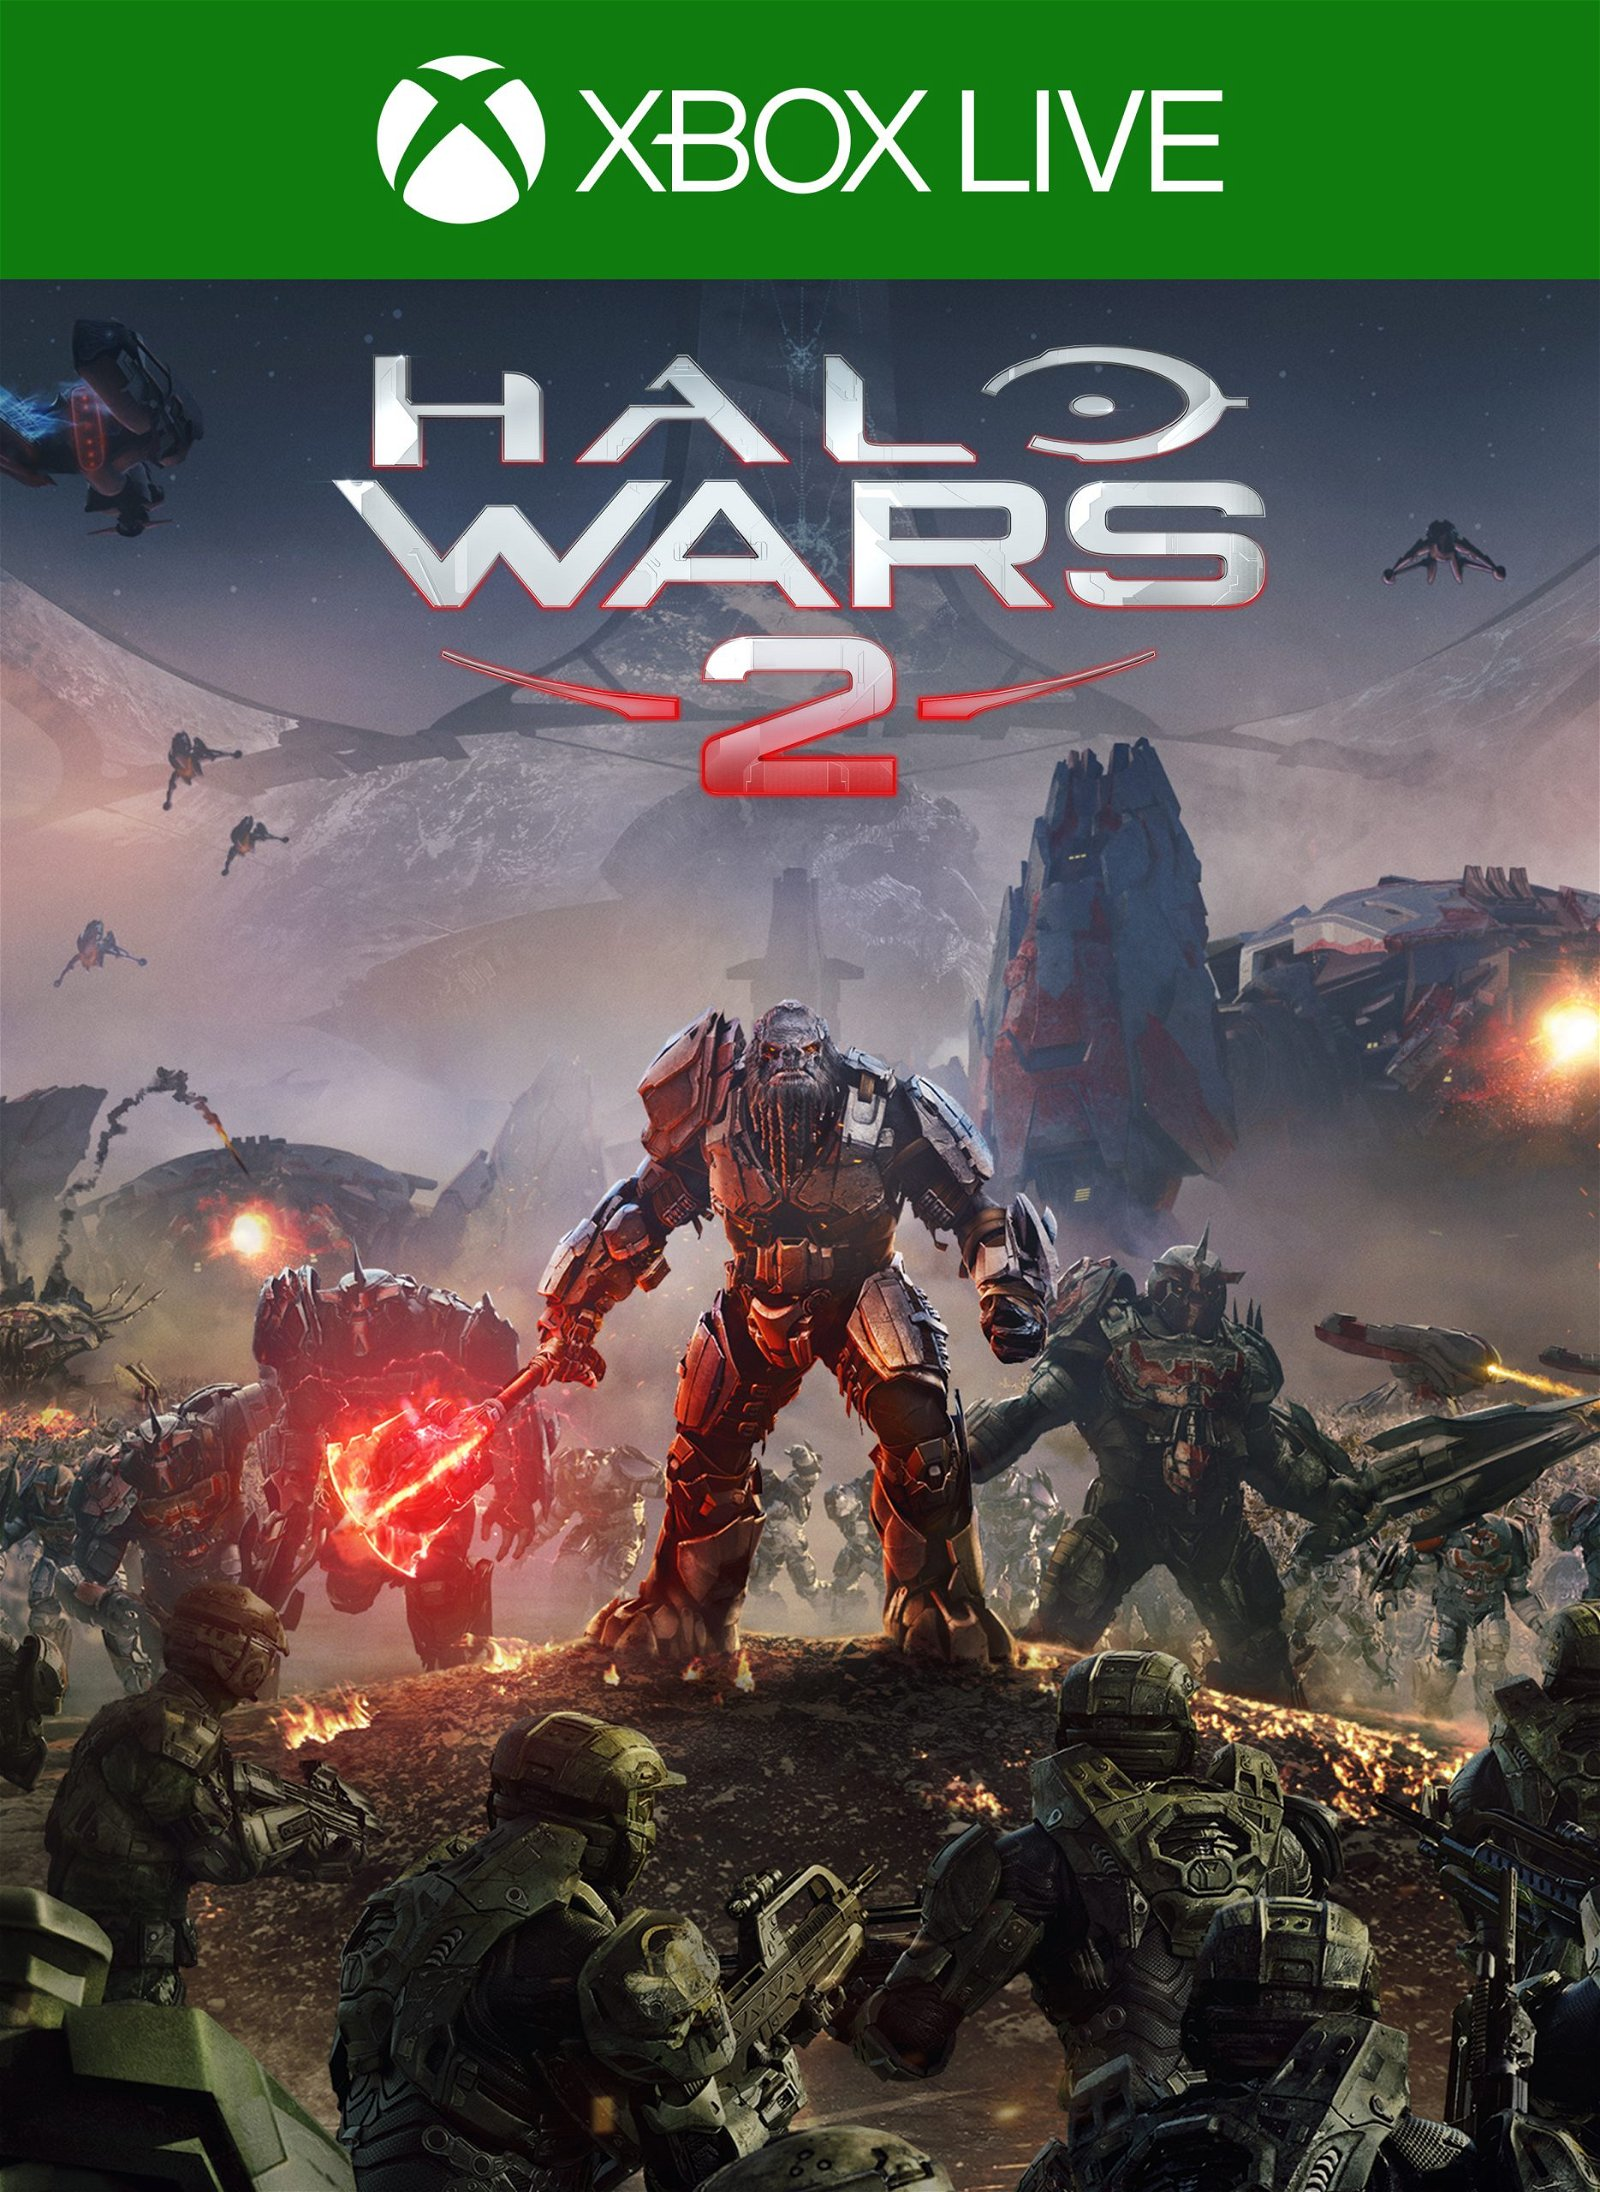 Halo Wars 2 Review - The Best RTS Ever Released on Consoles